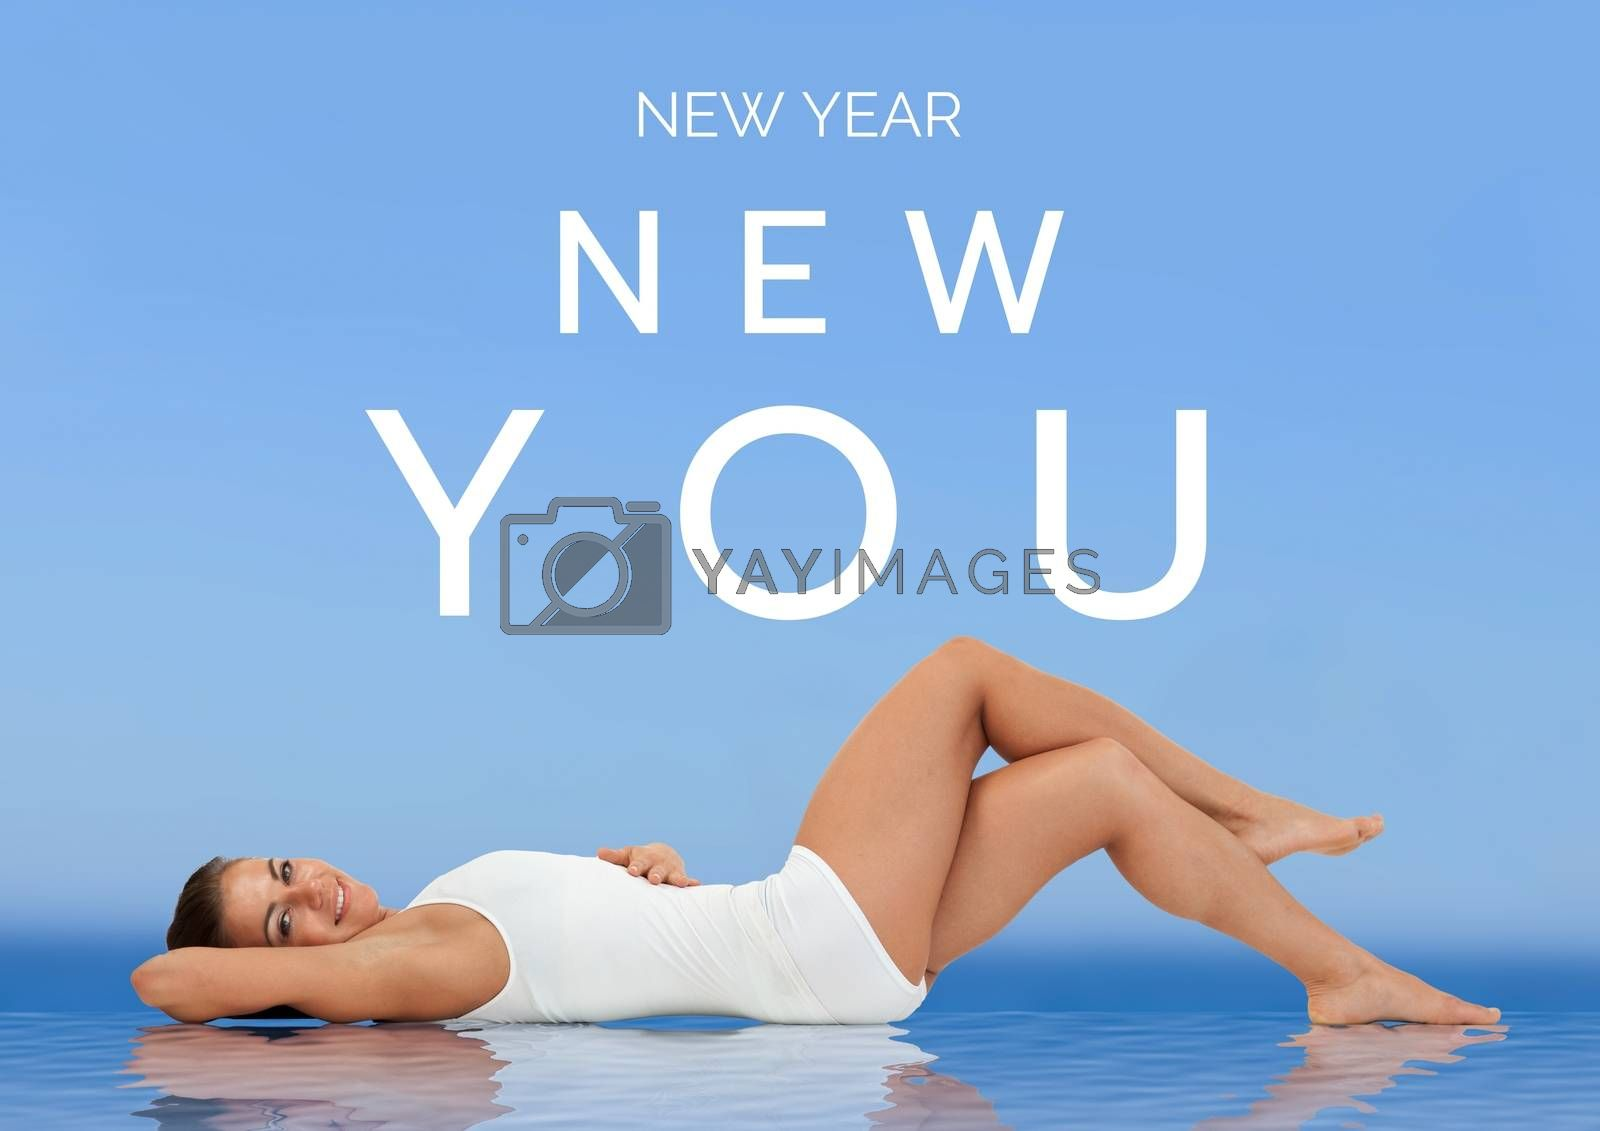 Digital Composite of New year text and laying woman against blue background